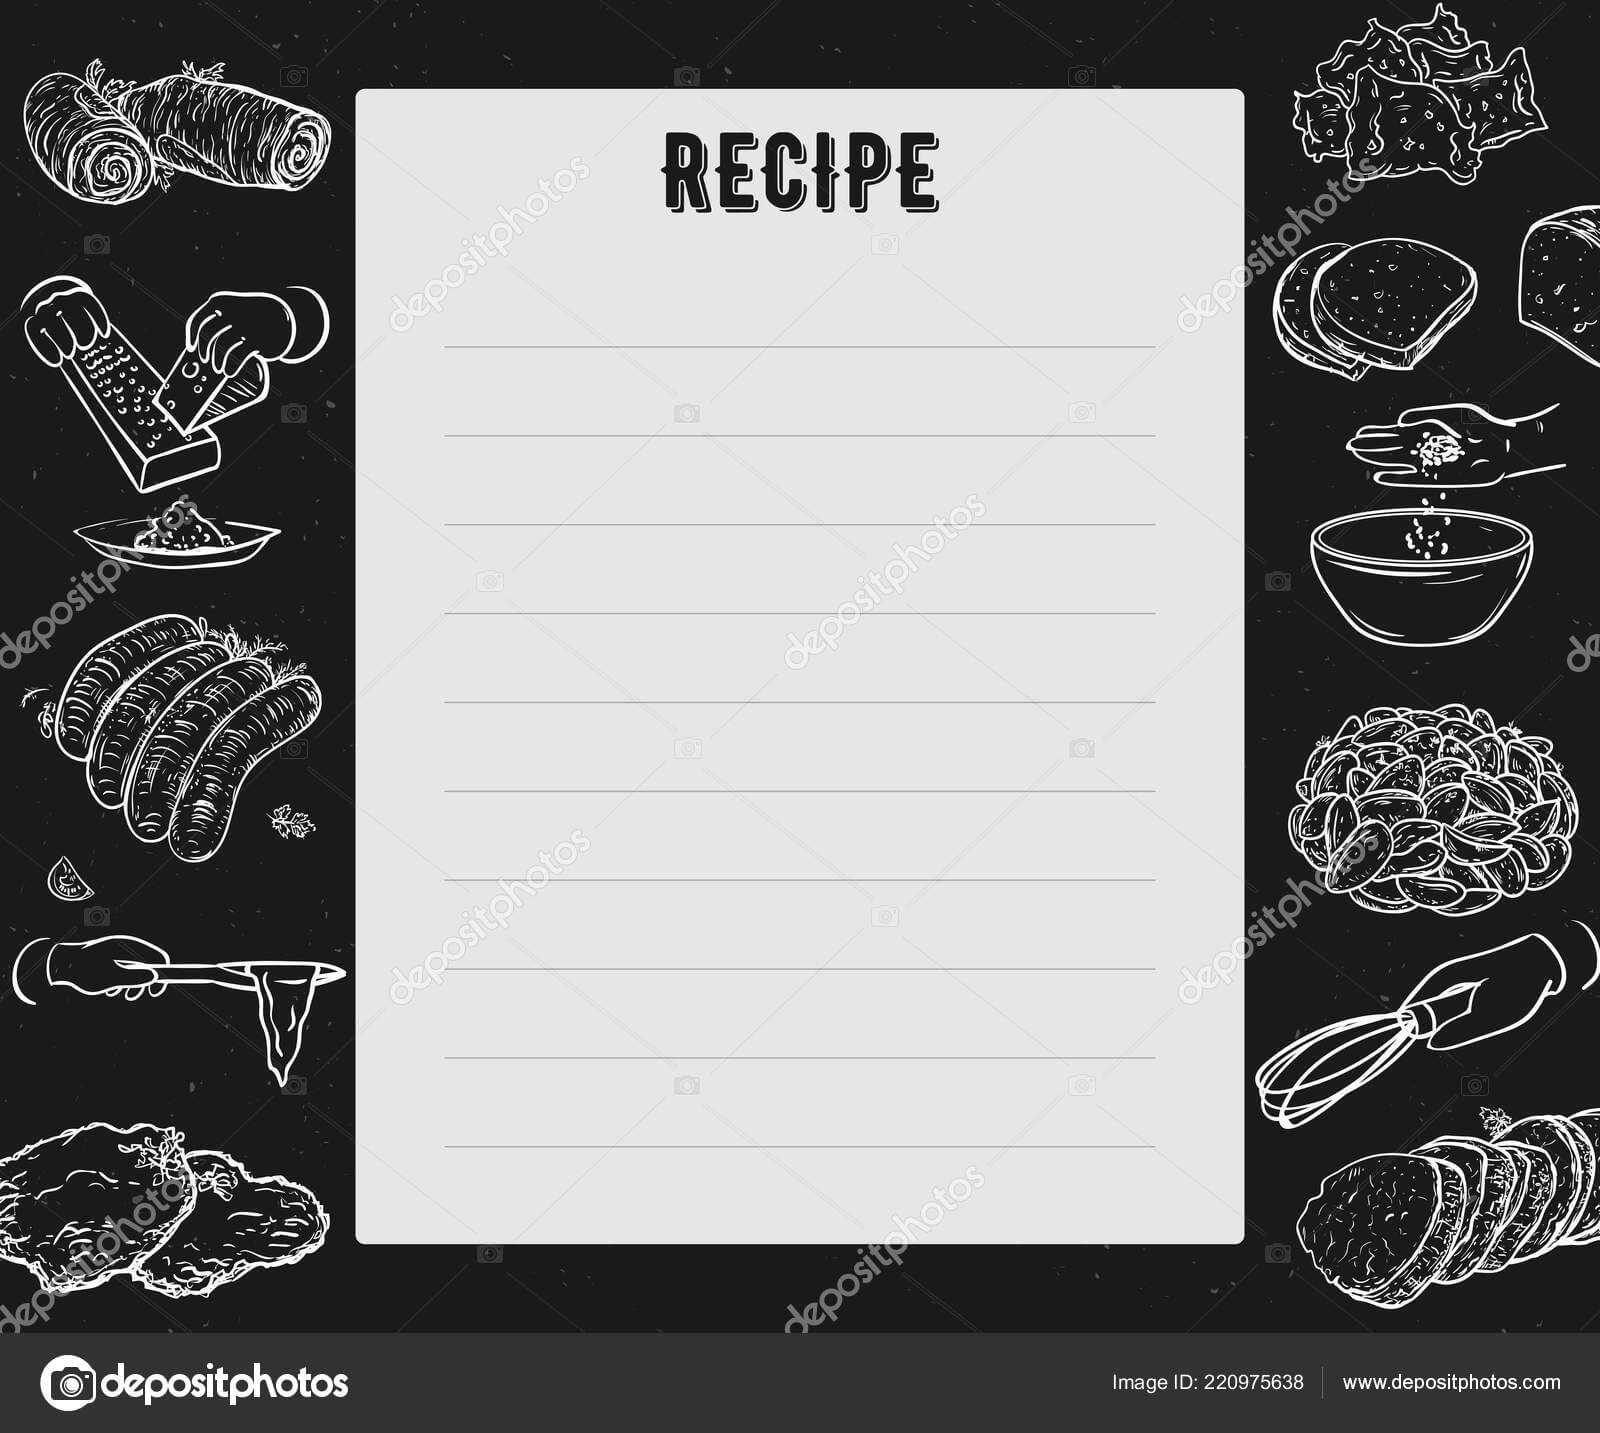 Recipe Card Cookbook Page Design Template Hands Preparing With Regard To Recipe Card Design Template